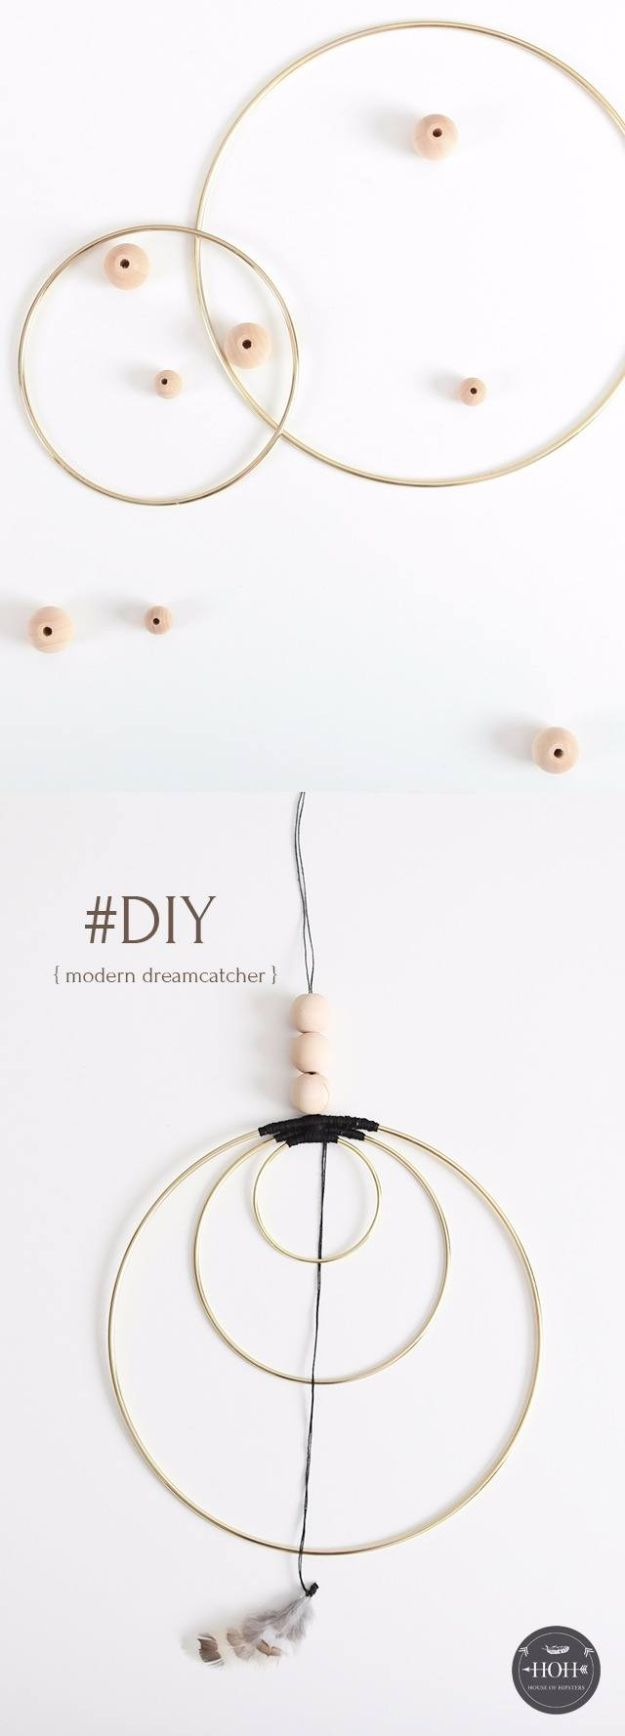 DIY Dream Catchers - Minimalist Dreamcatcher - How to Make a Dreamcatcher Step by Step Tutorial - Easy Ideas for Dream Catcher for Kids Room - Make a Mobile, Moon Designs, Pattern Ideas, Boho Dreamcatcher With Sticks, Cool Wall Hangings for Teen Rooms - Cheap Home Decor Ideas on A Budget #diyideas #teencrafts #dreamcatchers